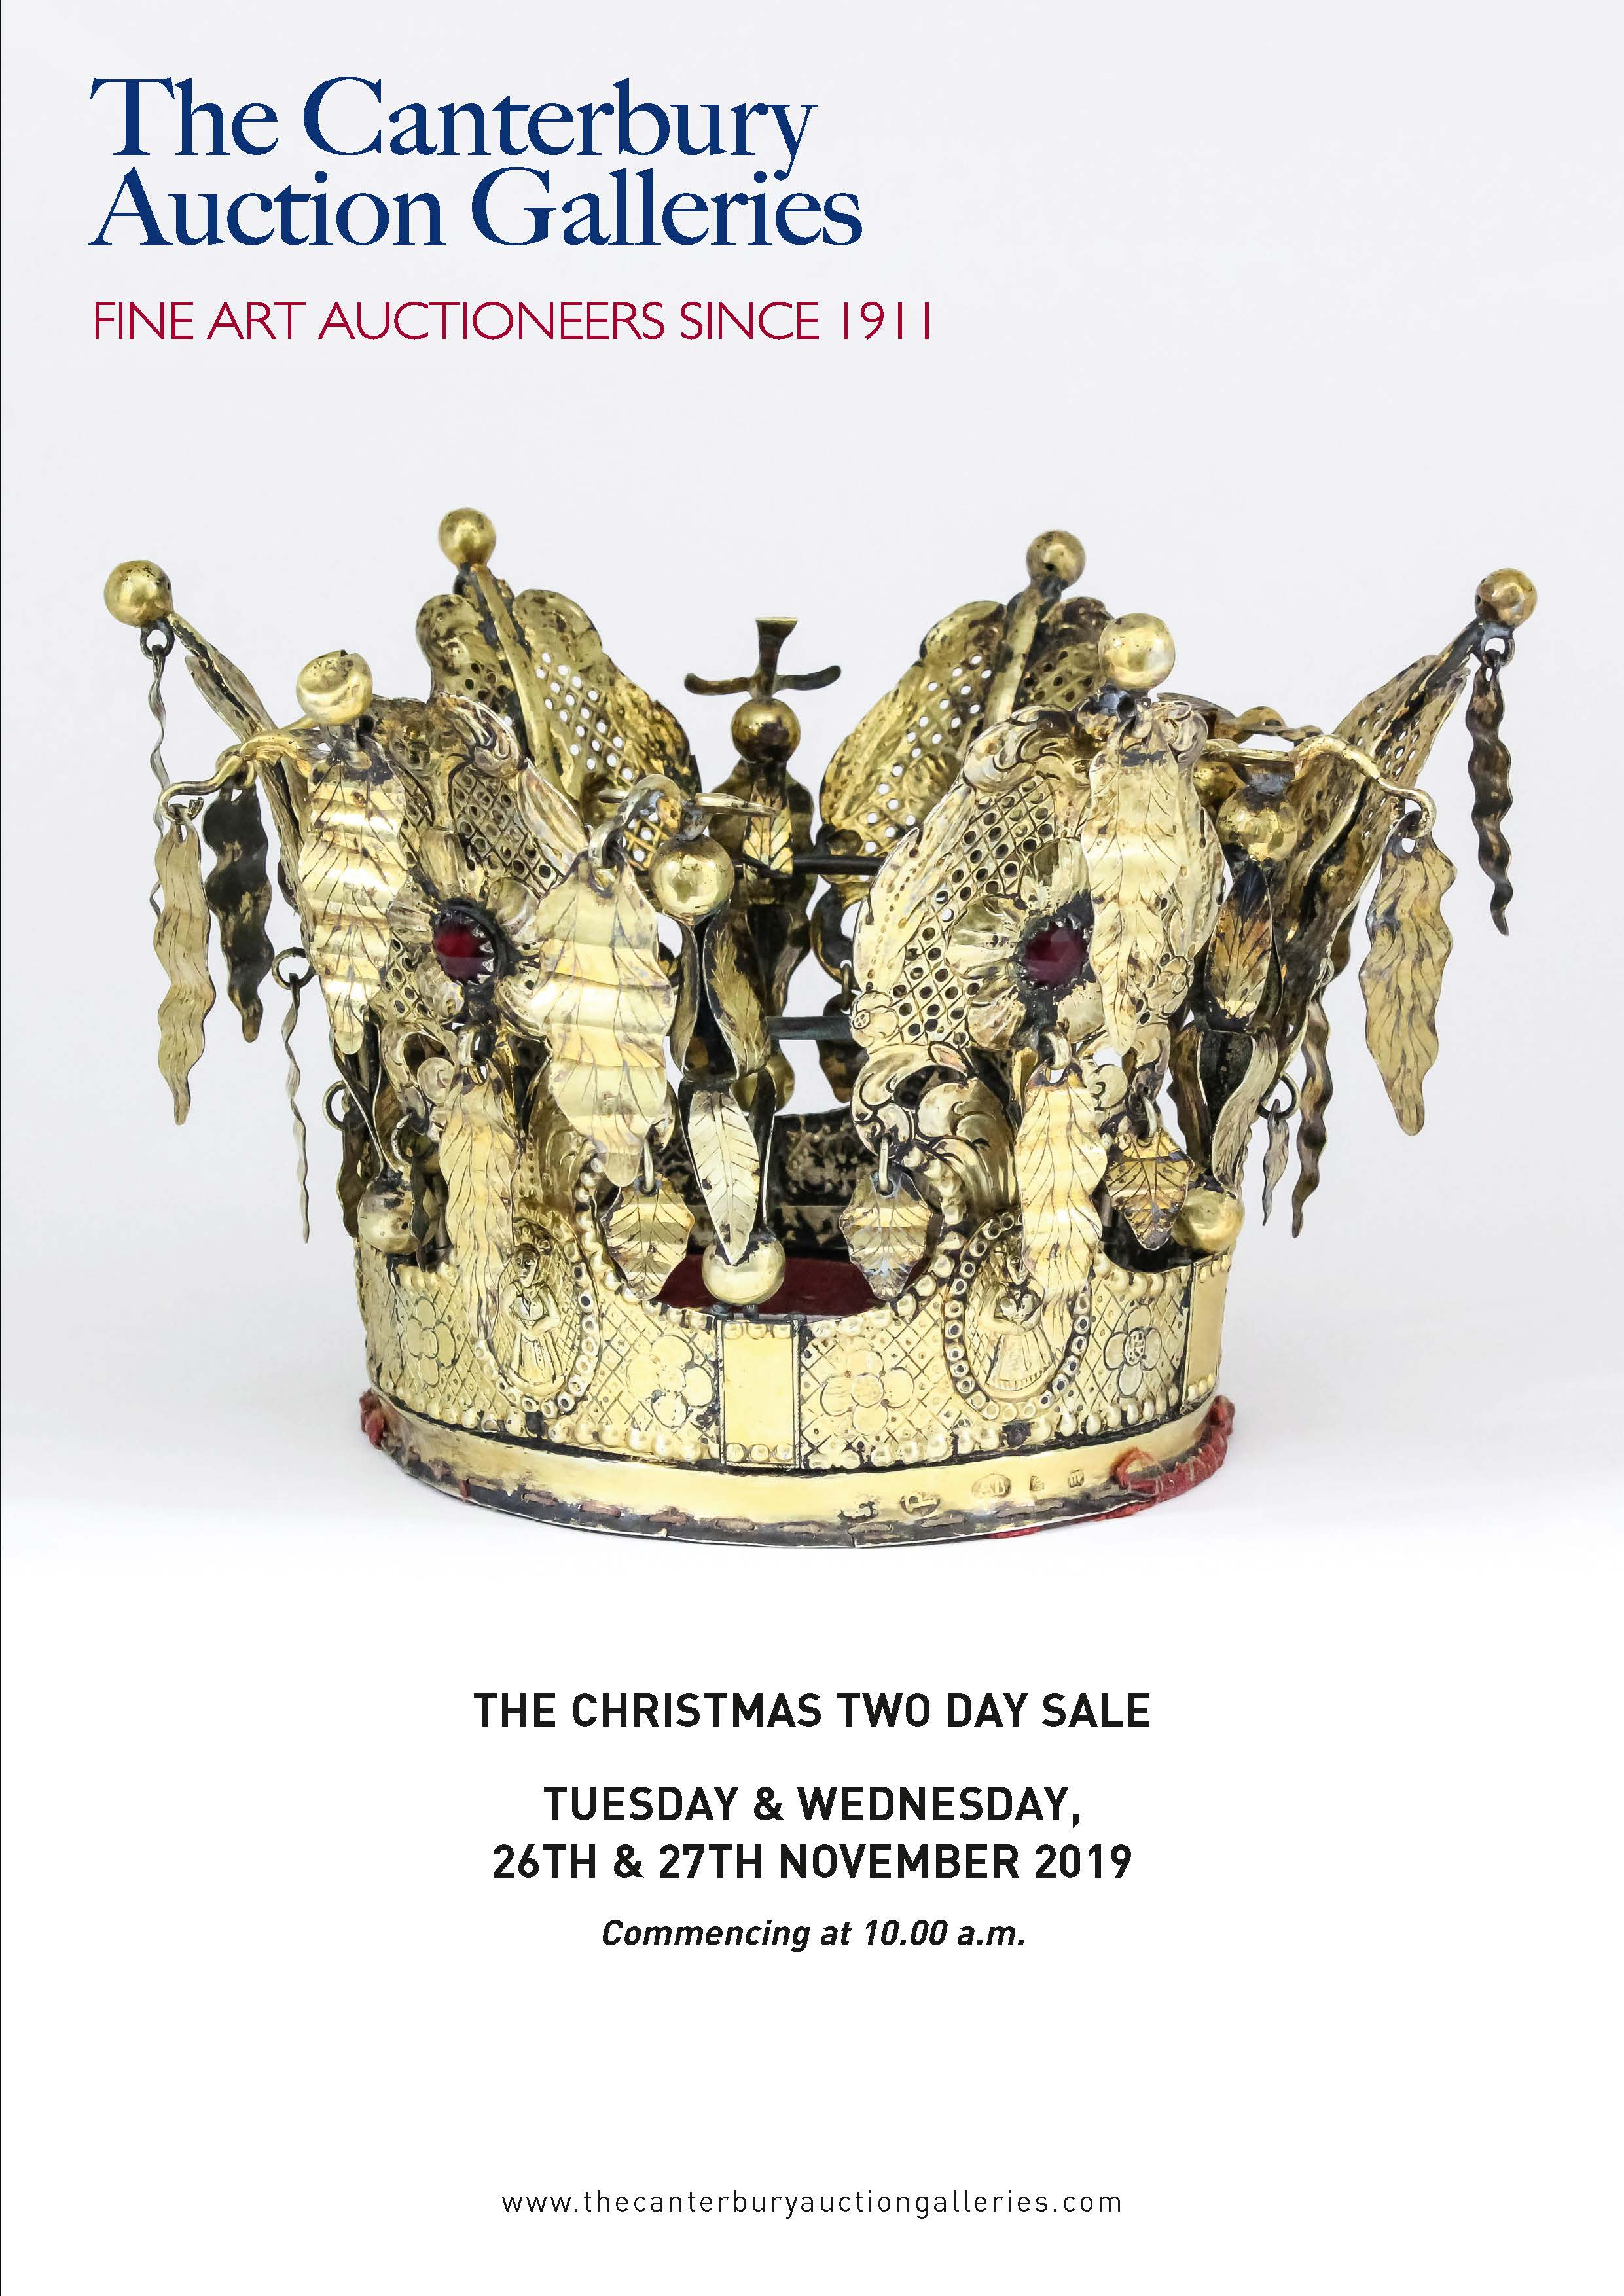 Day 1 - The Christmas Two Day Sale of Fine Art & Antiques